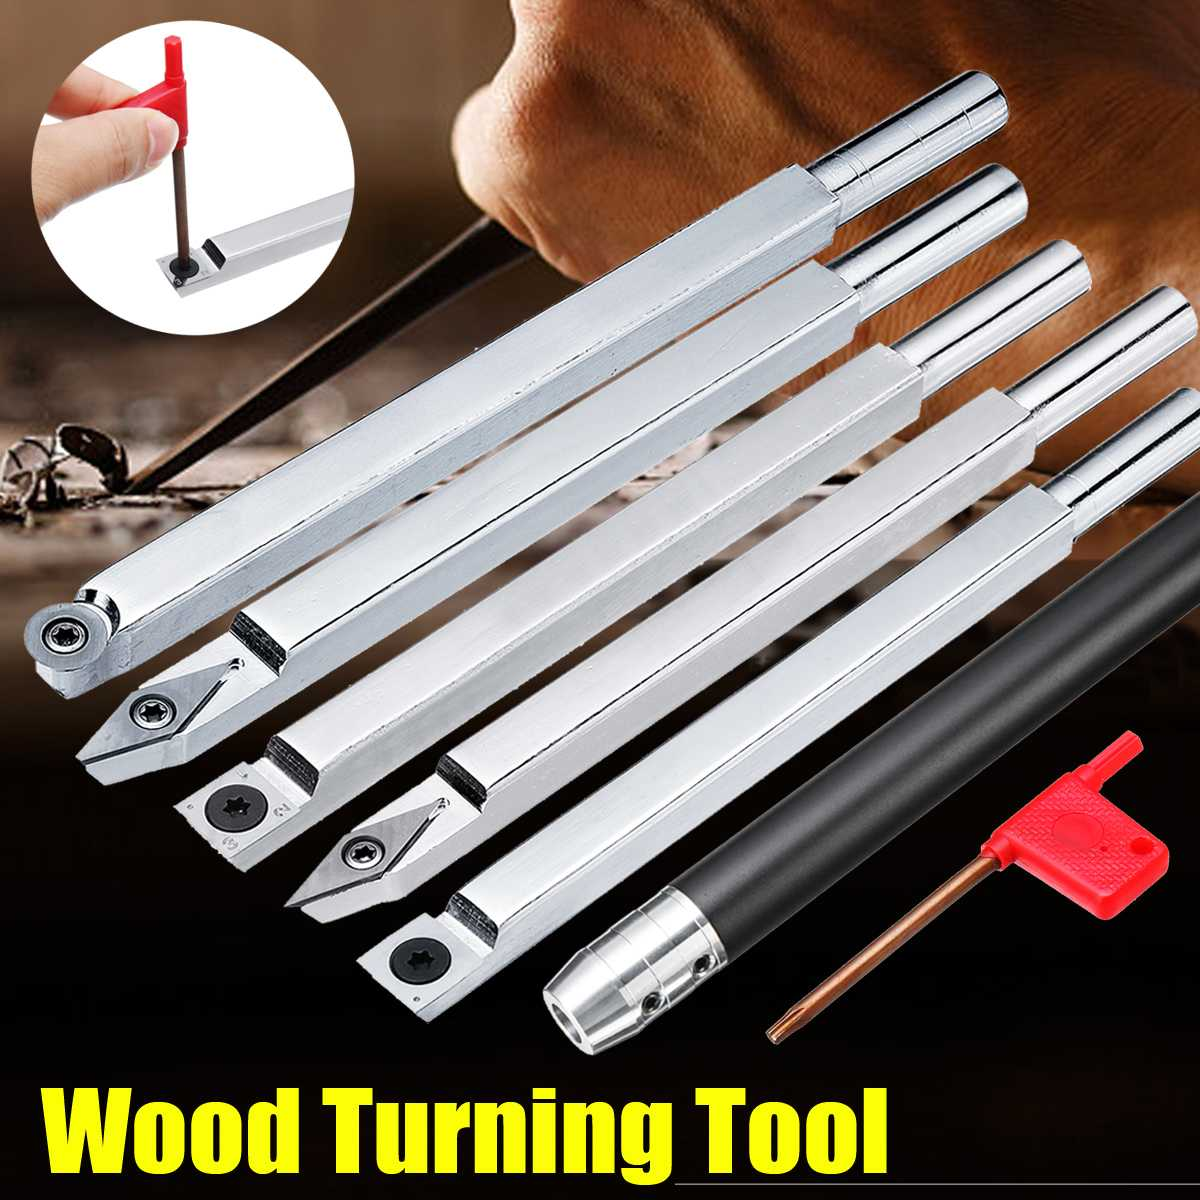 Wood Turning Tool Chisel Changeable Tungsten Carbide Tip Lathe Tool Insert Cutter Can Match Alloy Steel Woodworking Tool